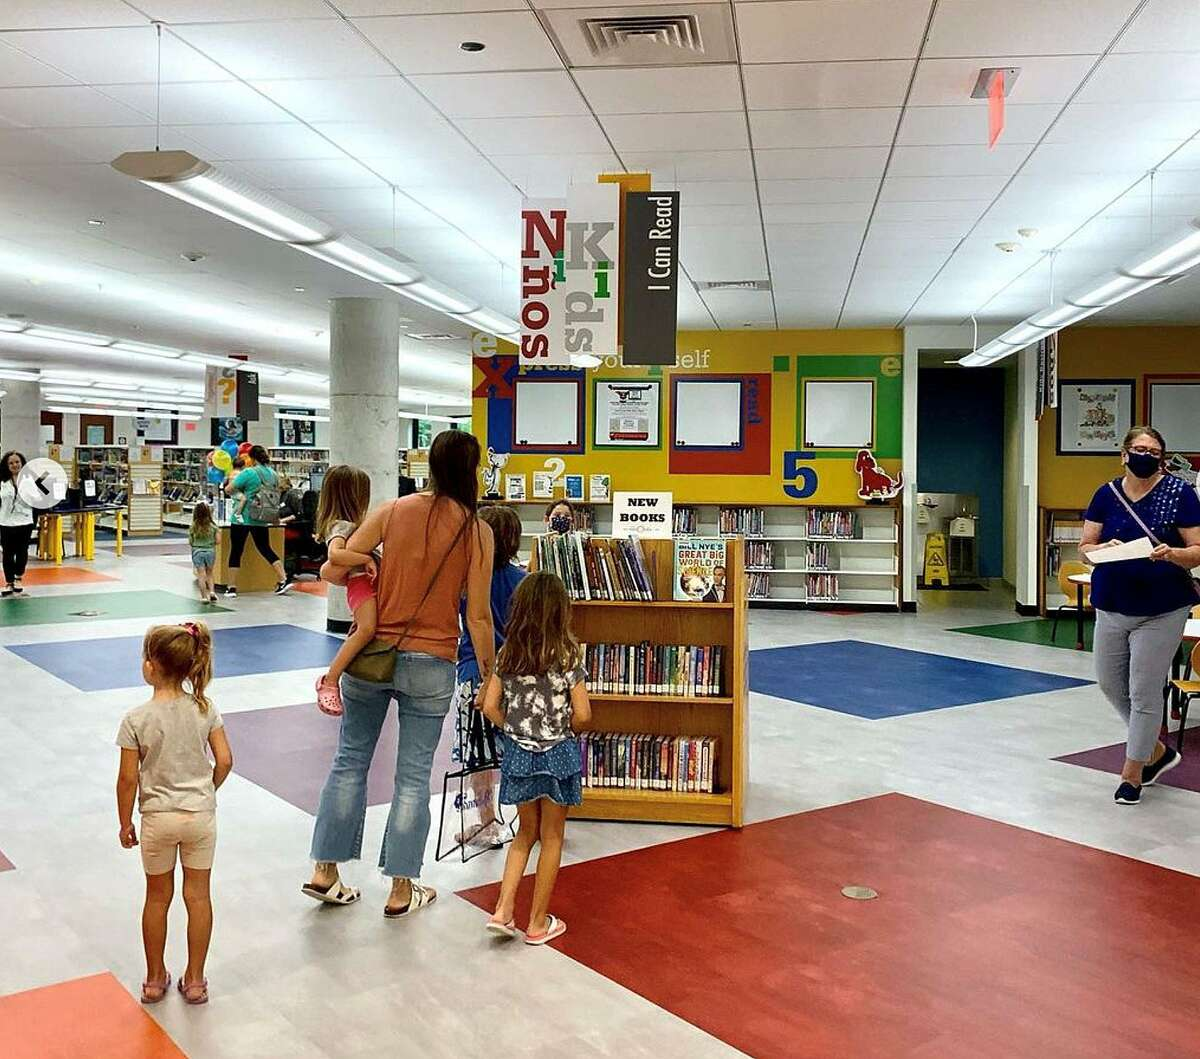 A little bit of wonder and awe as families reacquaint themselves with their local libraries. Harris County Public Libraries recently reopened to the public.